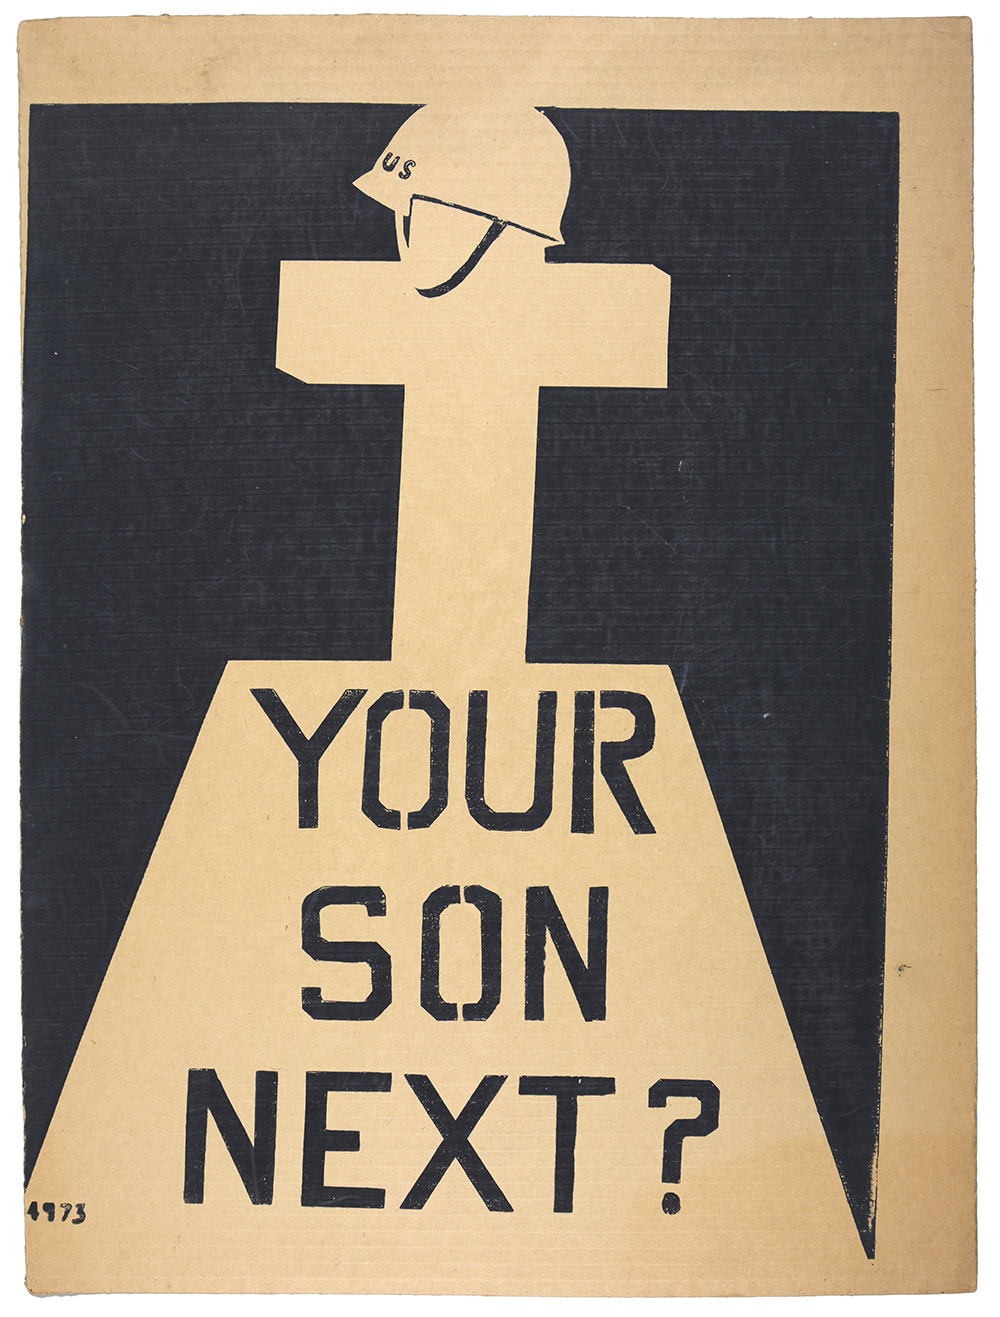 5.-Your-Son-Next-1970-Courtesy-Shapero-Modern.jpg